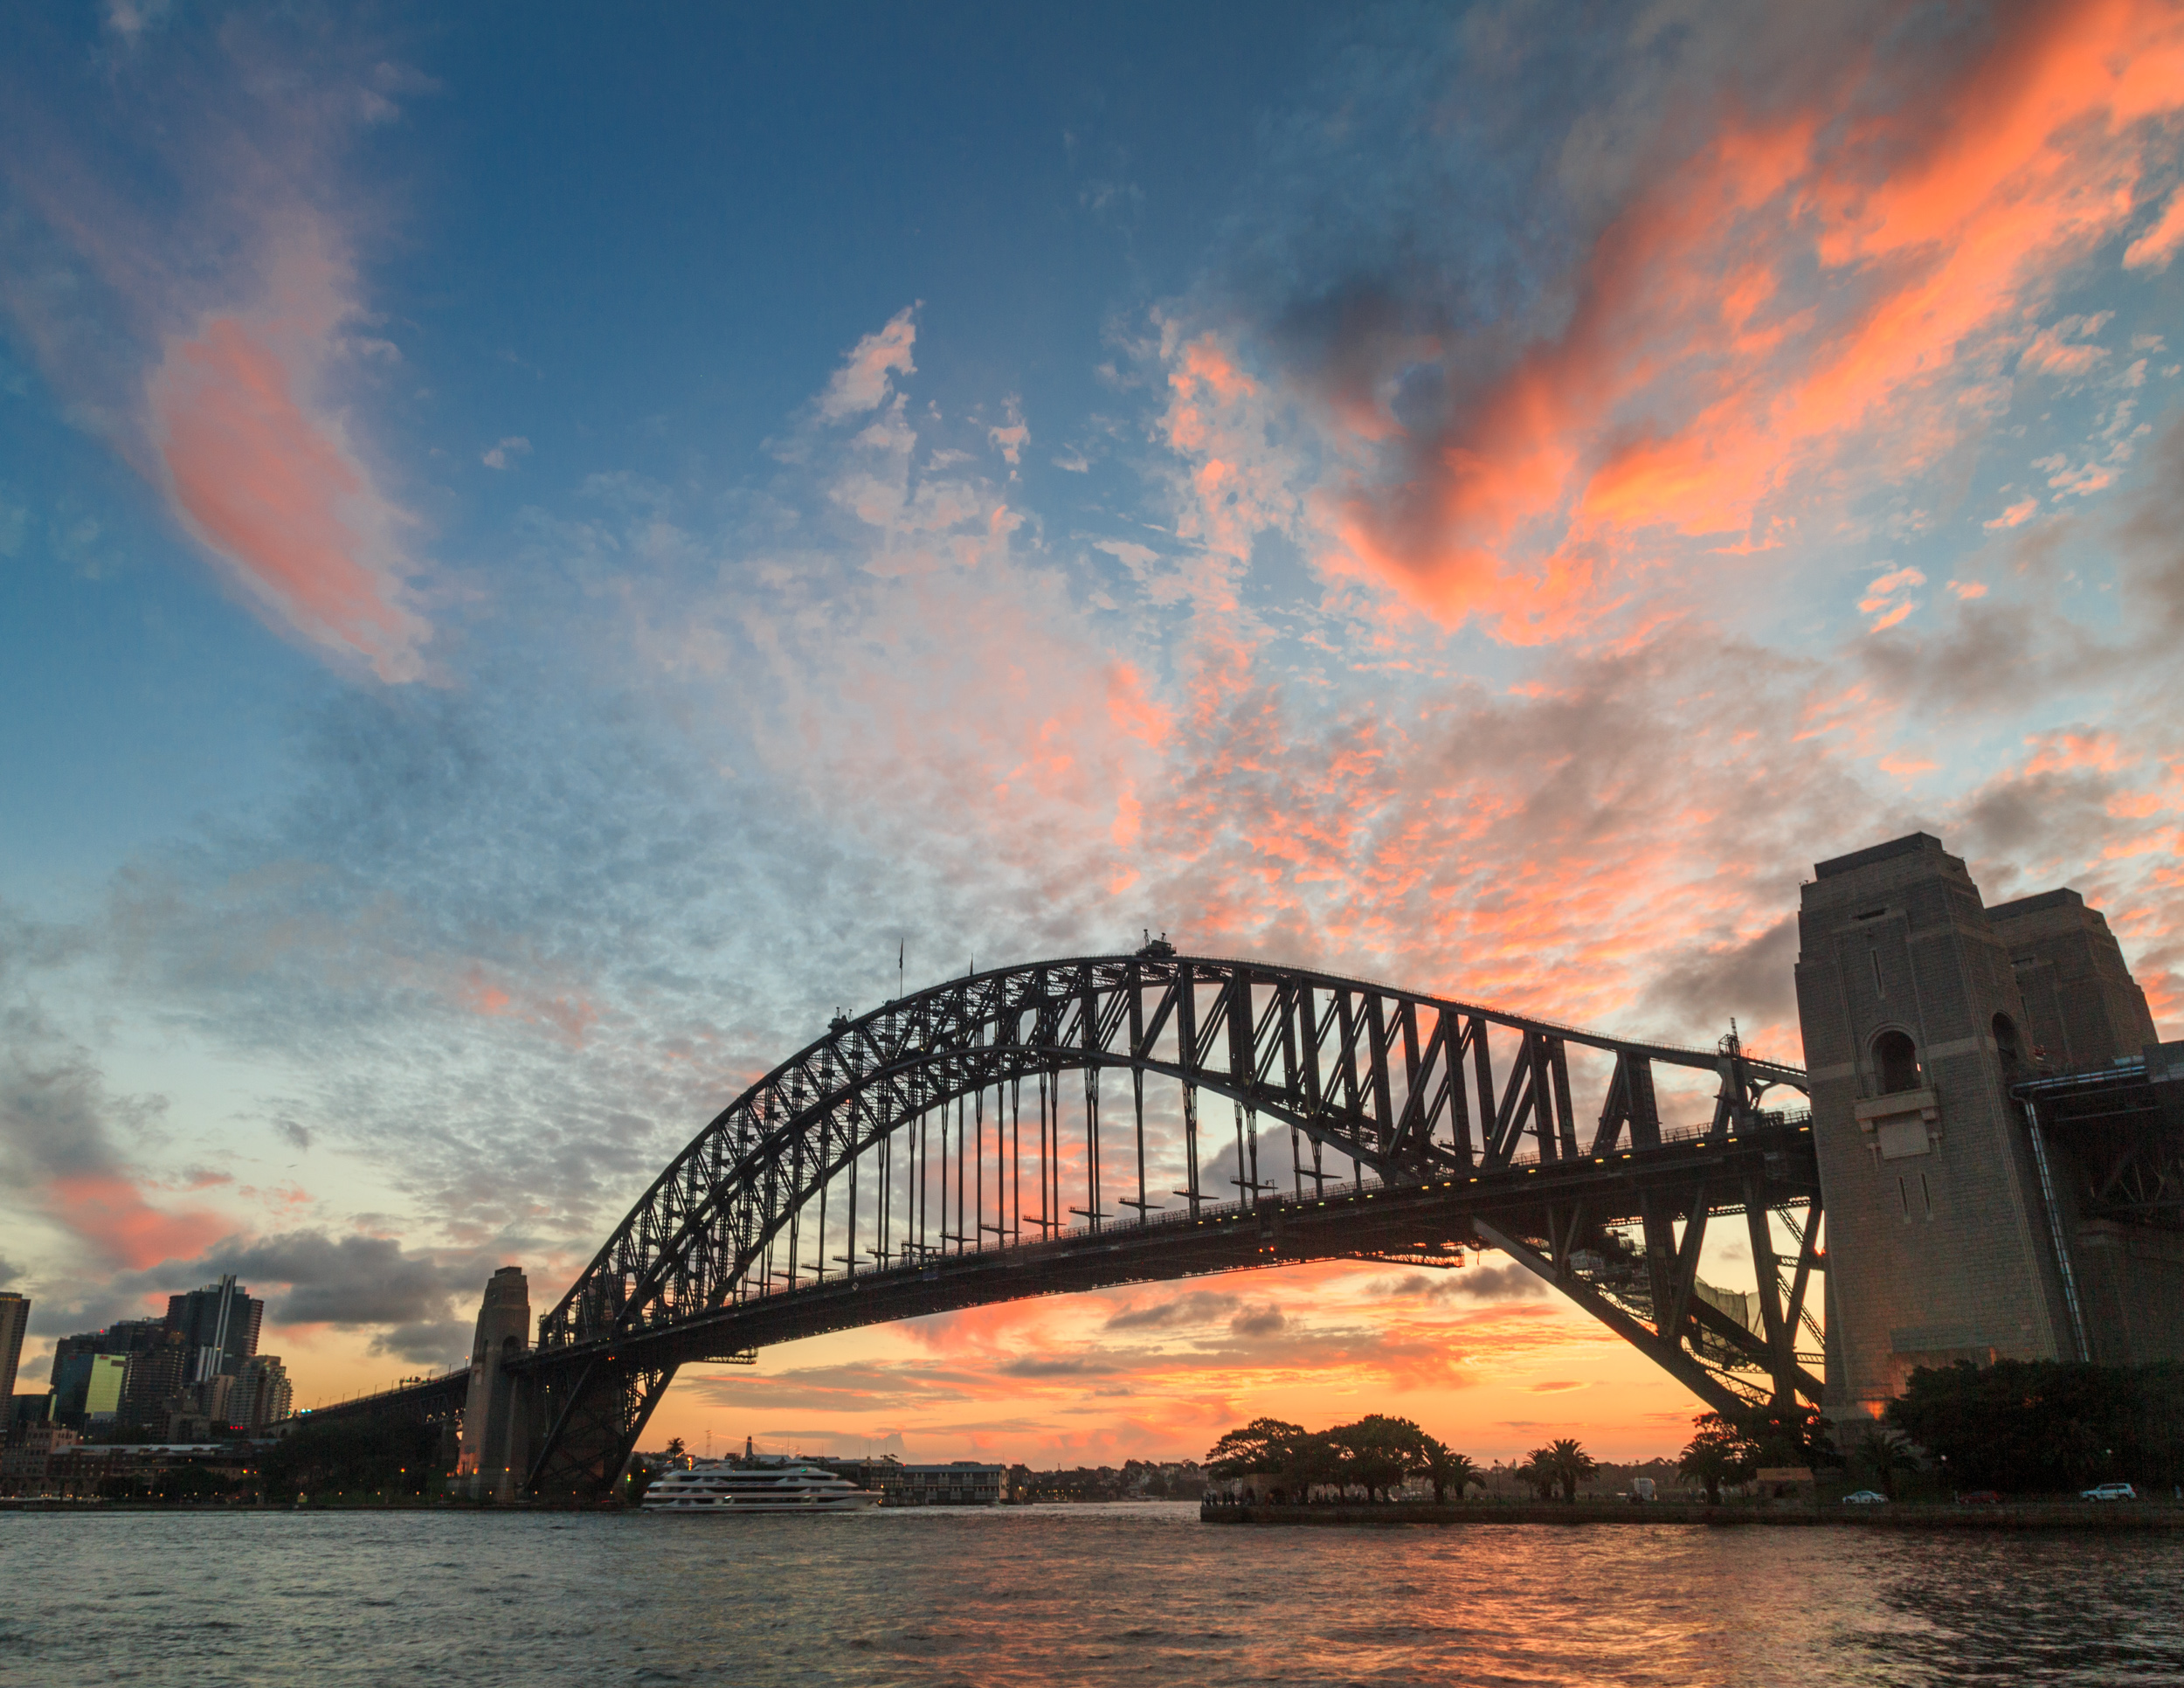 Sydney is one of the most expensive cities in the world.